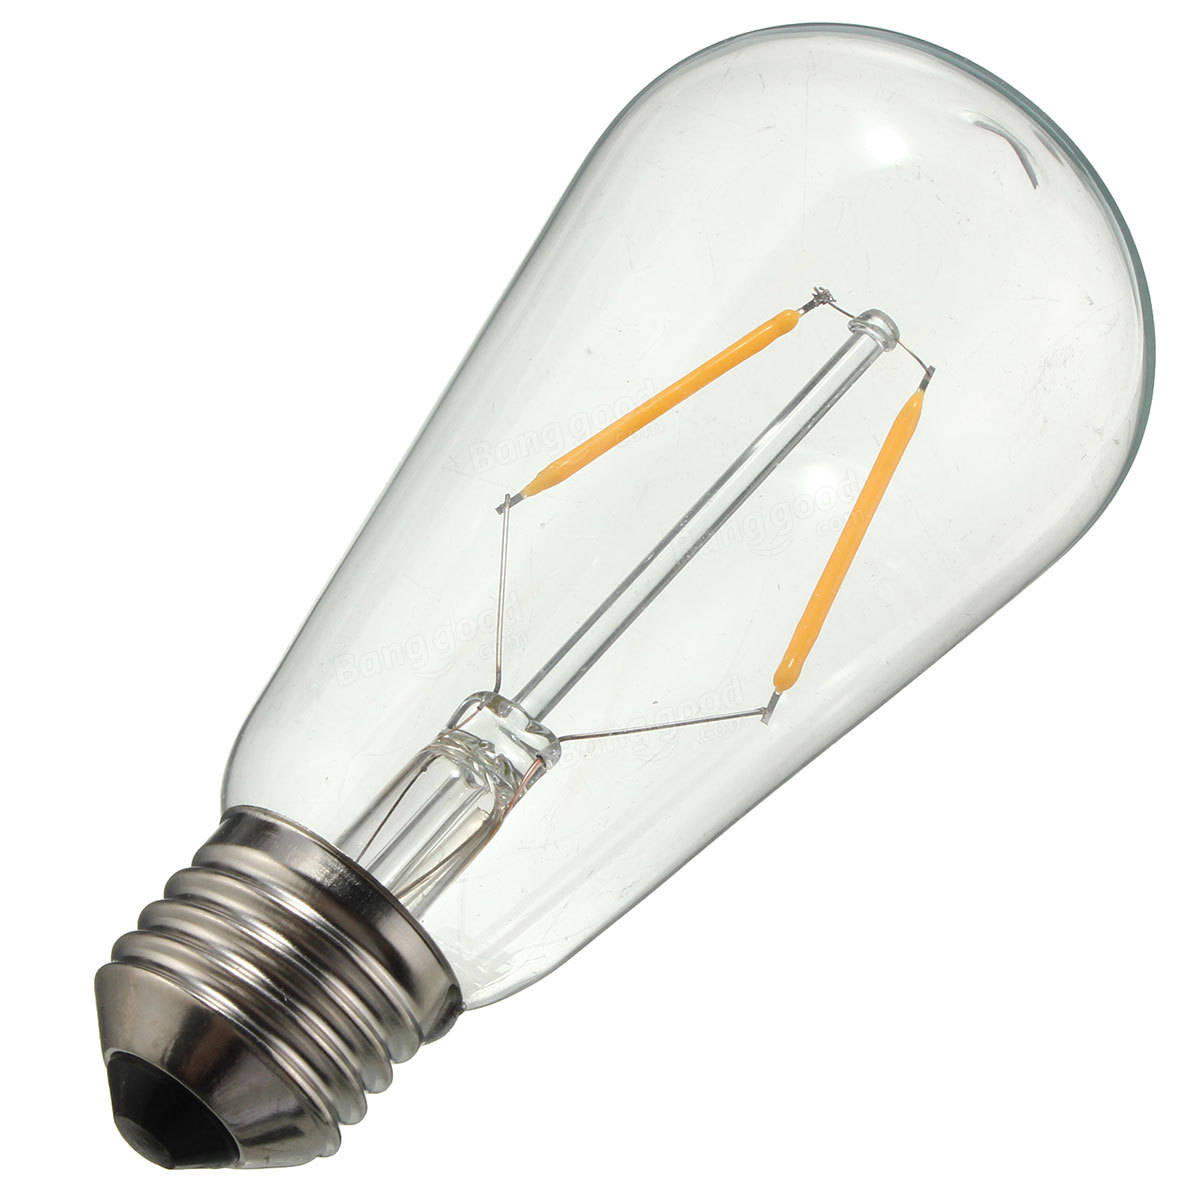 e27 led 2w warm white cob led filament retro edison light bulb ac110v ac220v sale. Black Bedroom Furniture Sets. Home Design Ideas